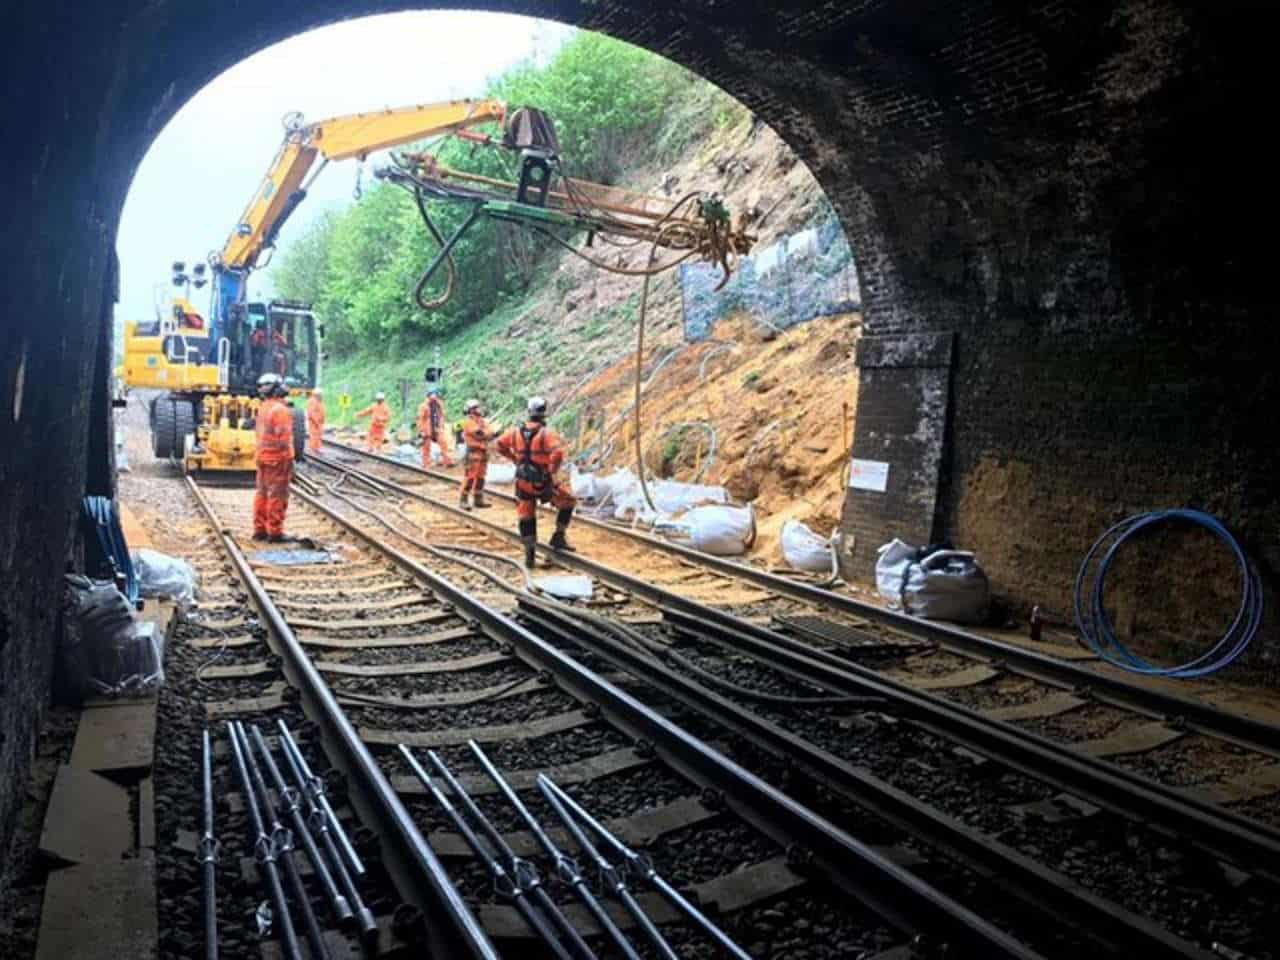 catherines tunnel Guildford railway upgrade